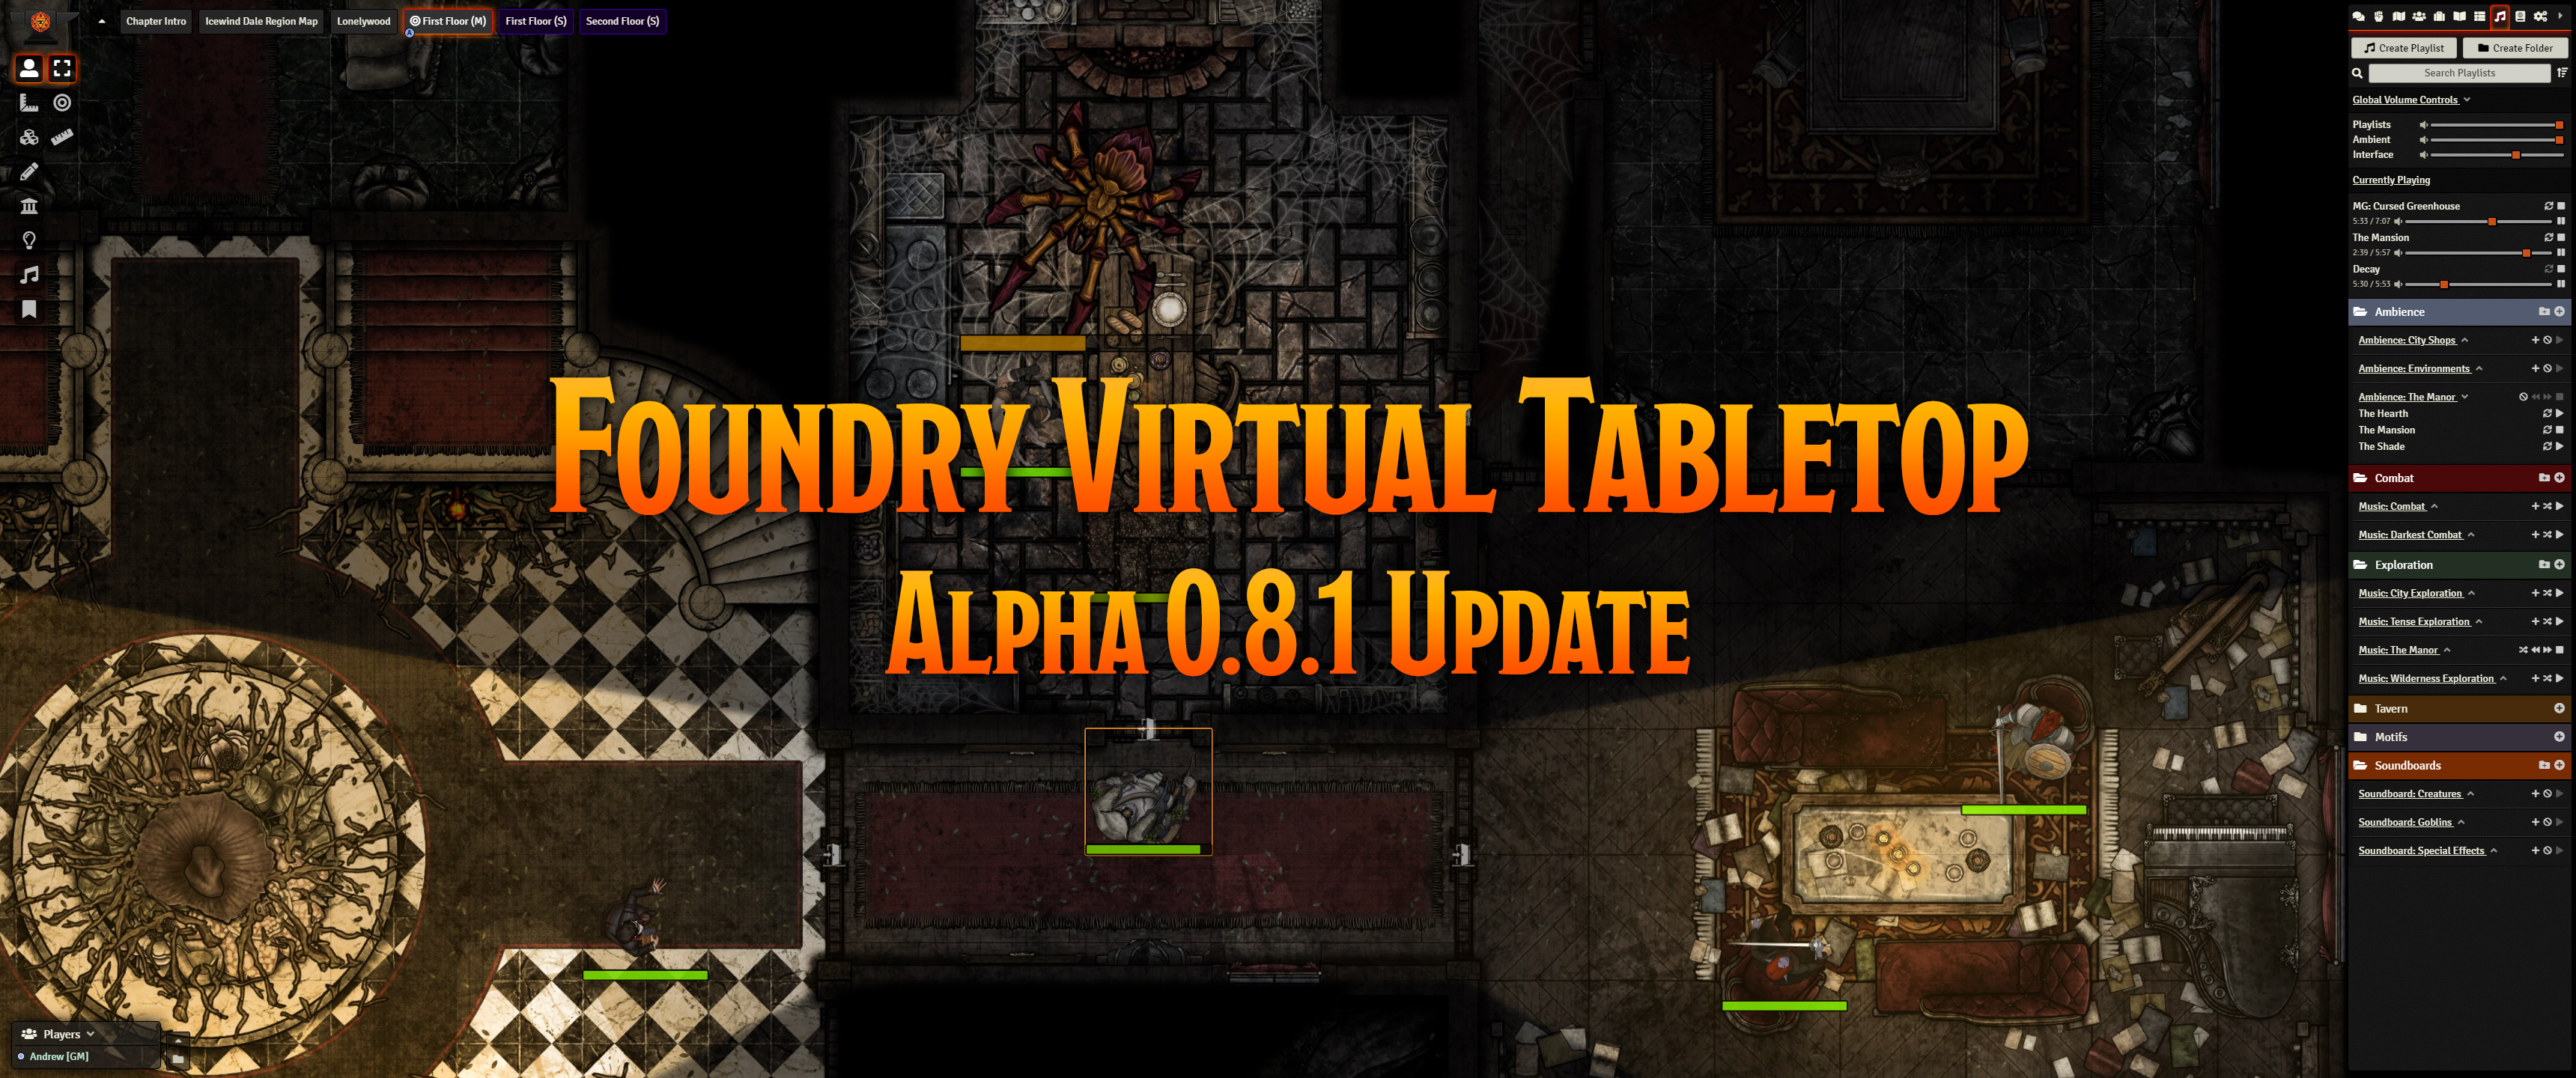 Release Notes for the Foundry Virtual Tabletop 0.8.1 version